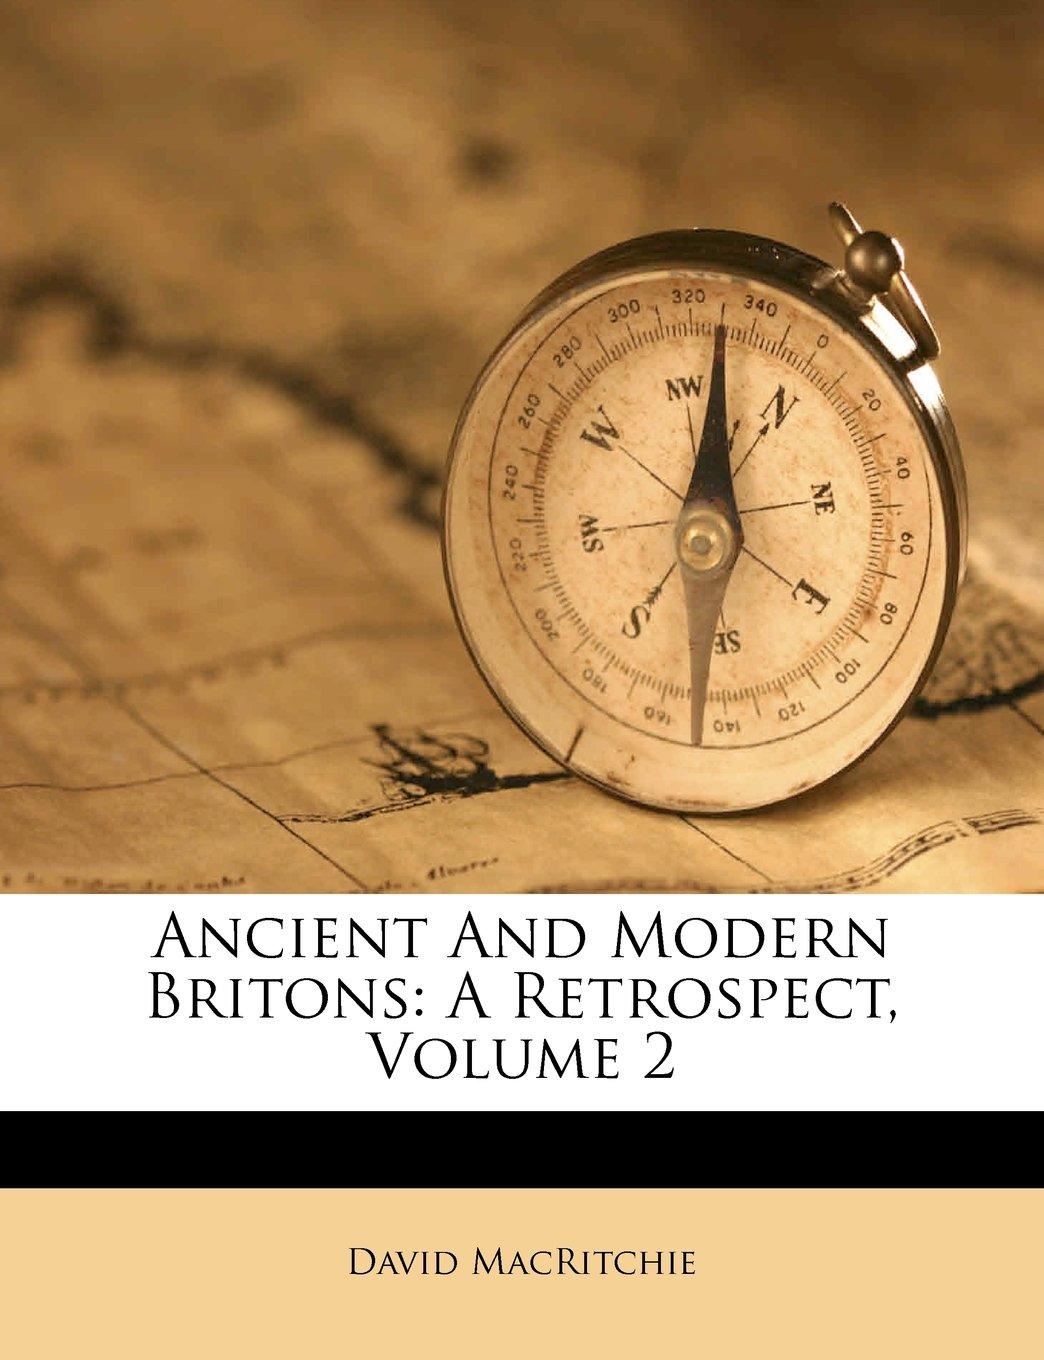 Ancient And Modern Britons: A Retrospect, Volume 2 pdf